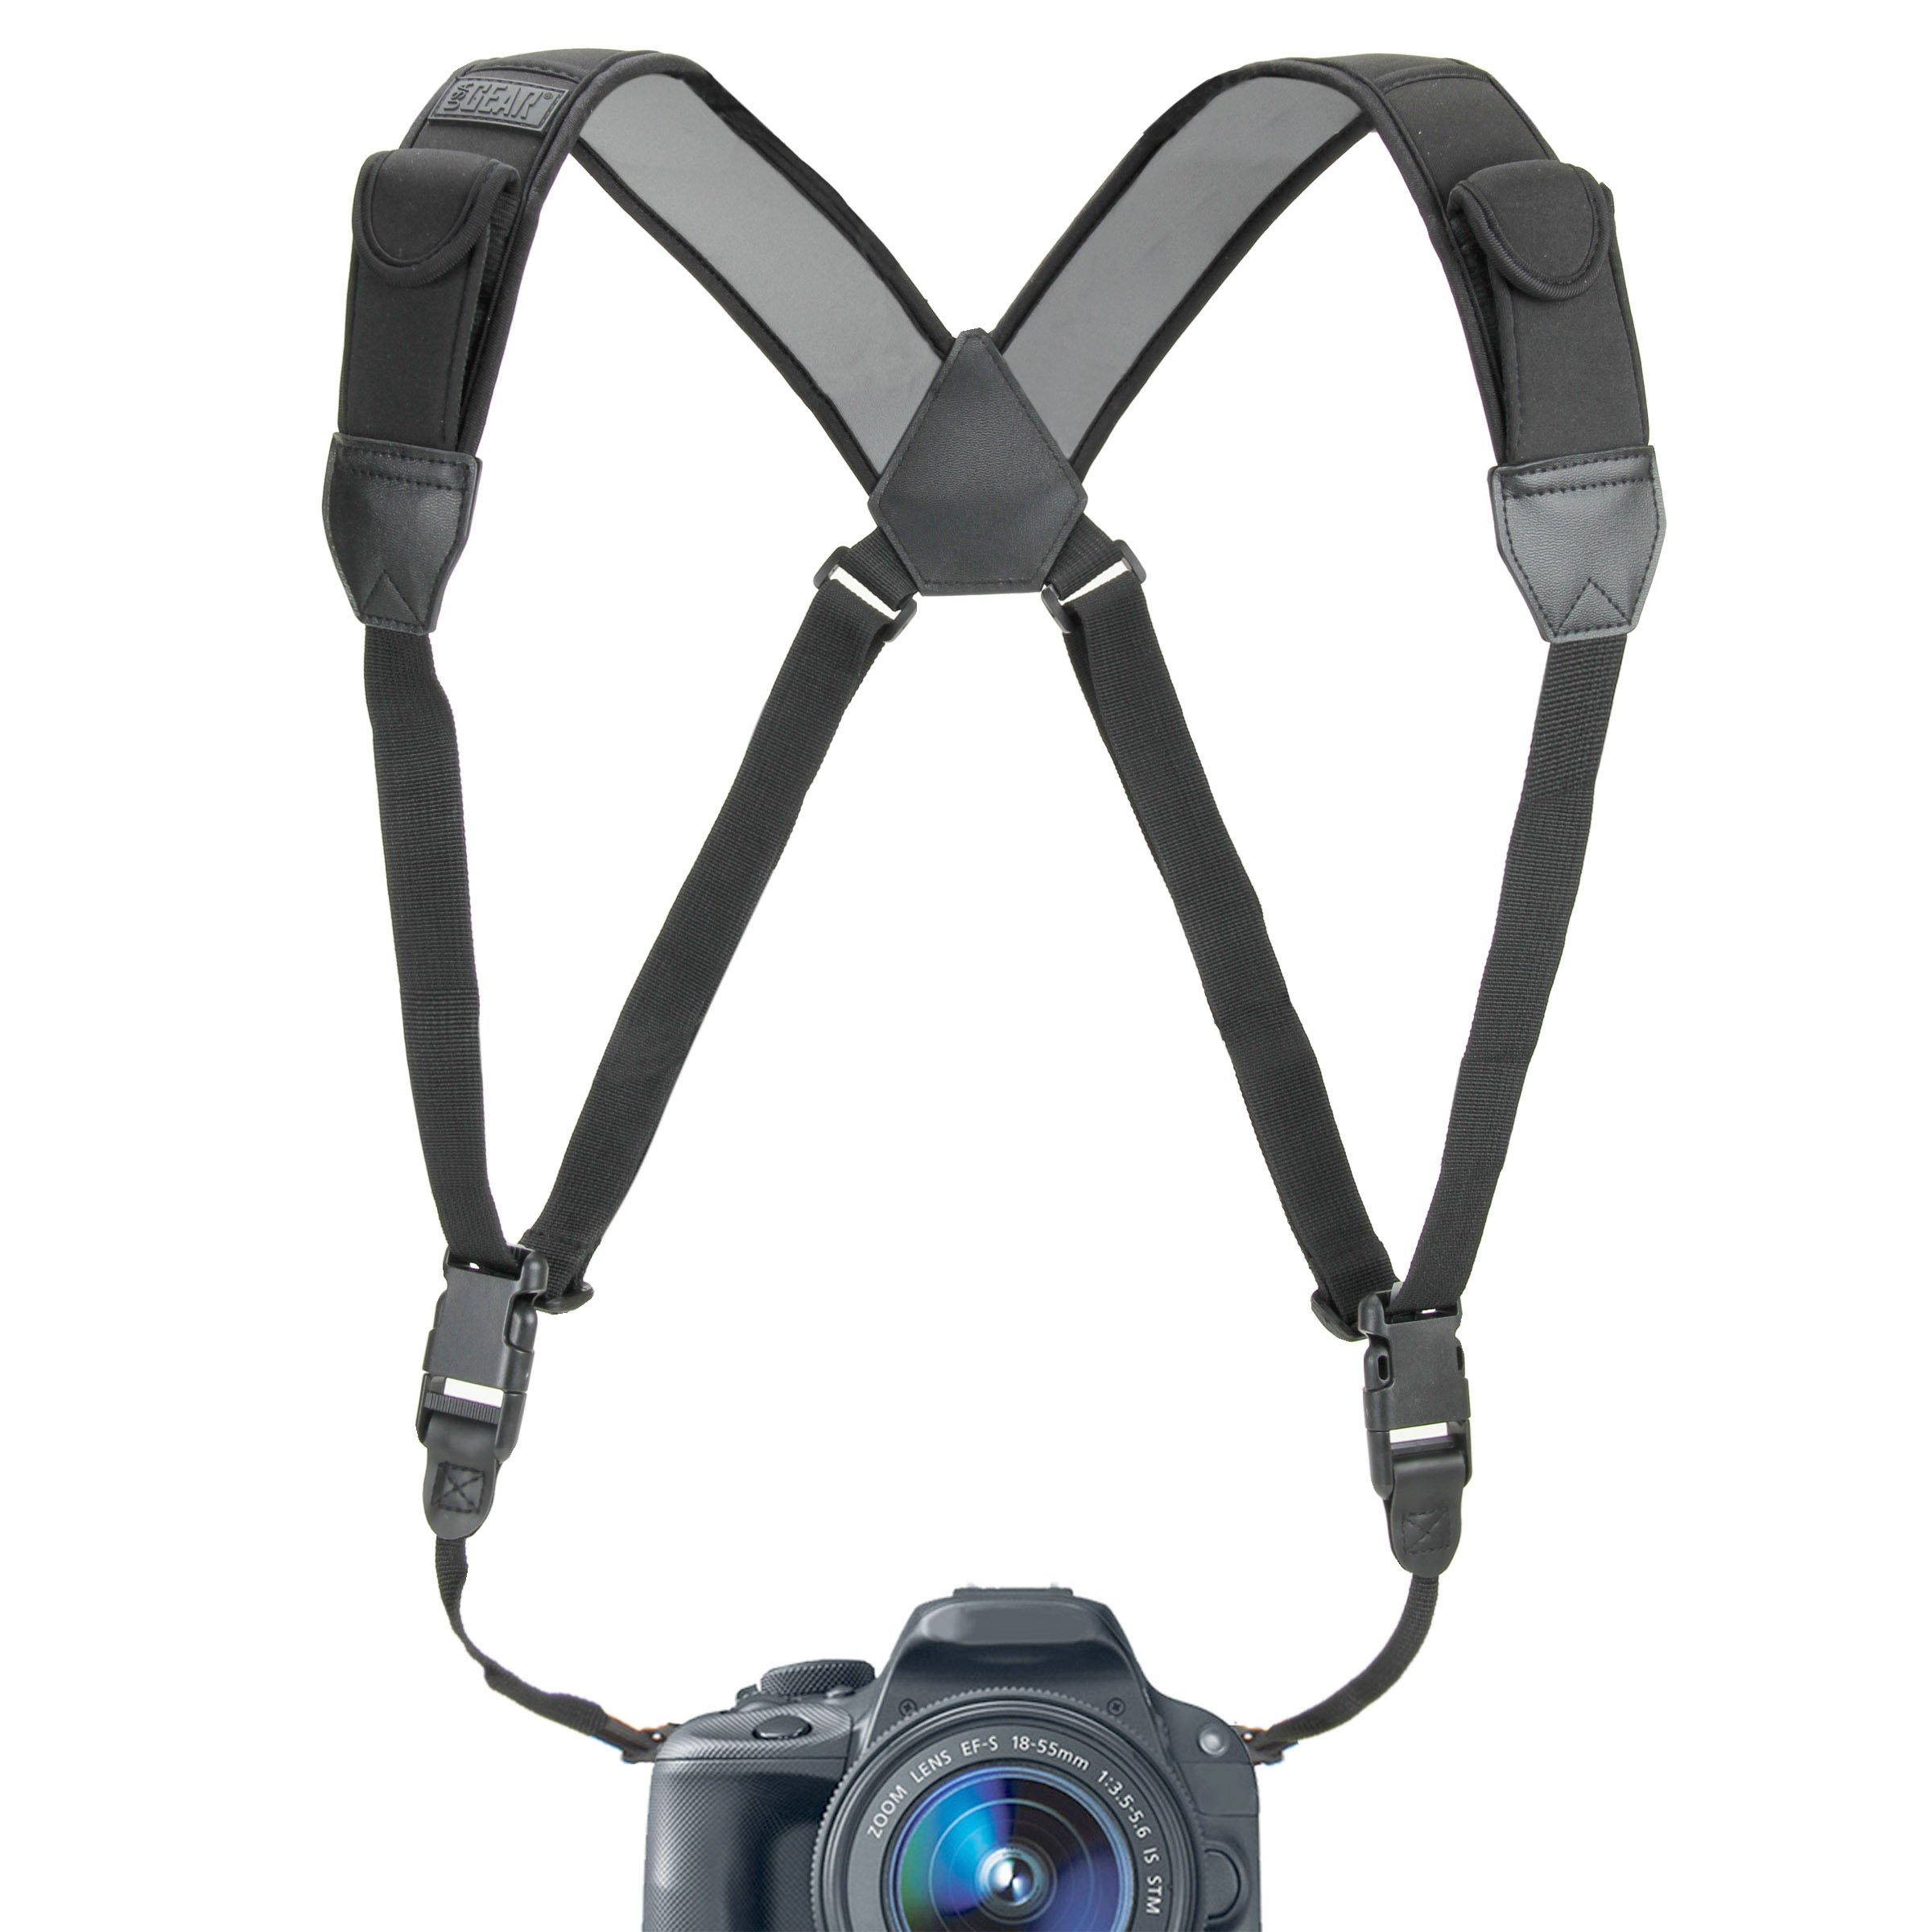 USA Gear DSLR Camera Strap Chest Harness with Quick Release Buckles, Black Neoprene Pattern and Accessory Pockets - Compatible with Canon, Nikon, Sony and More Point and Shoot, Mirrorless Cameras by USA Gear